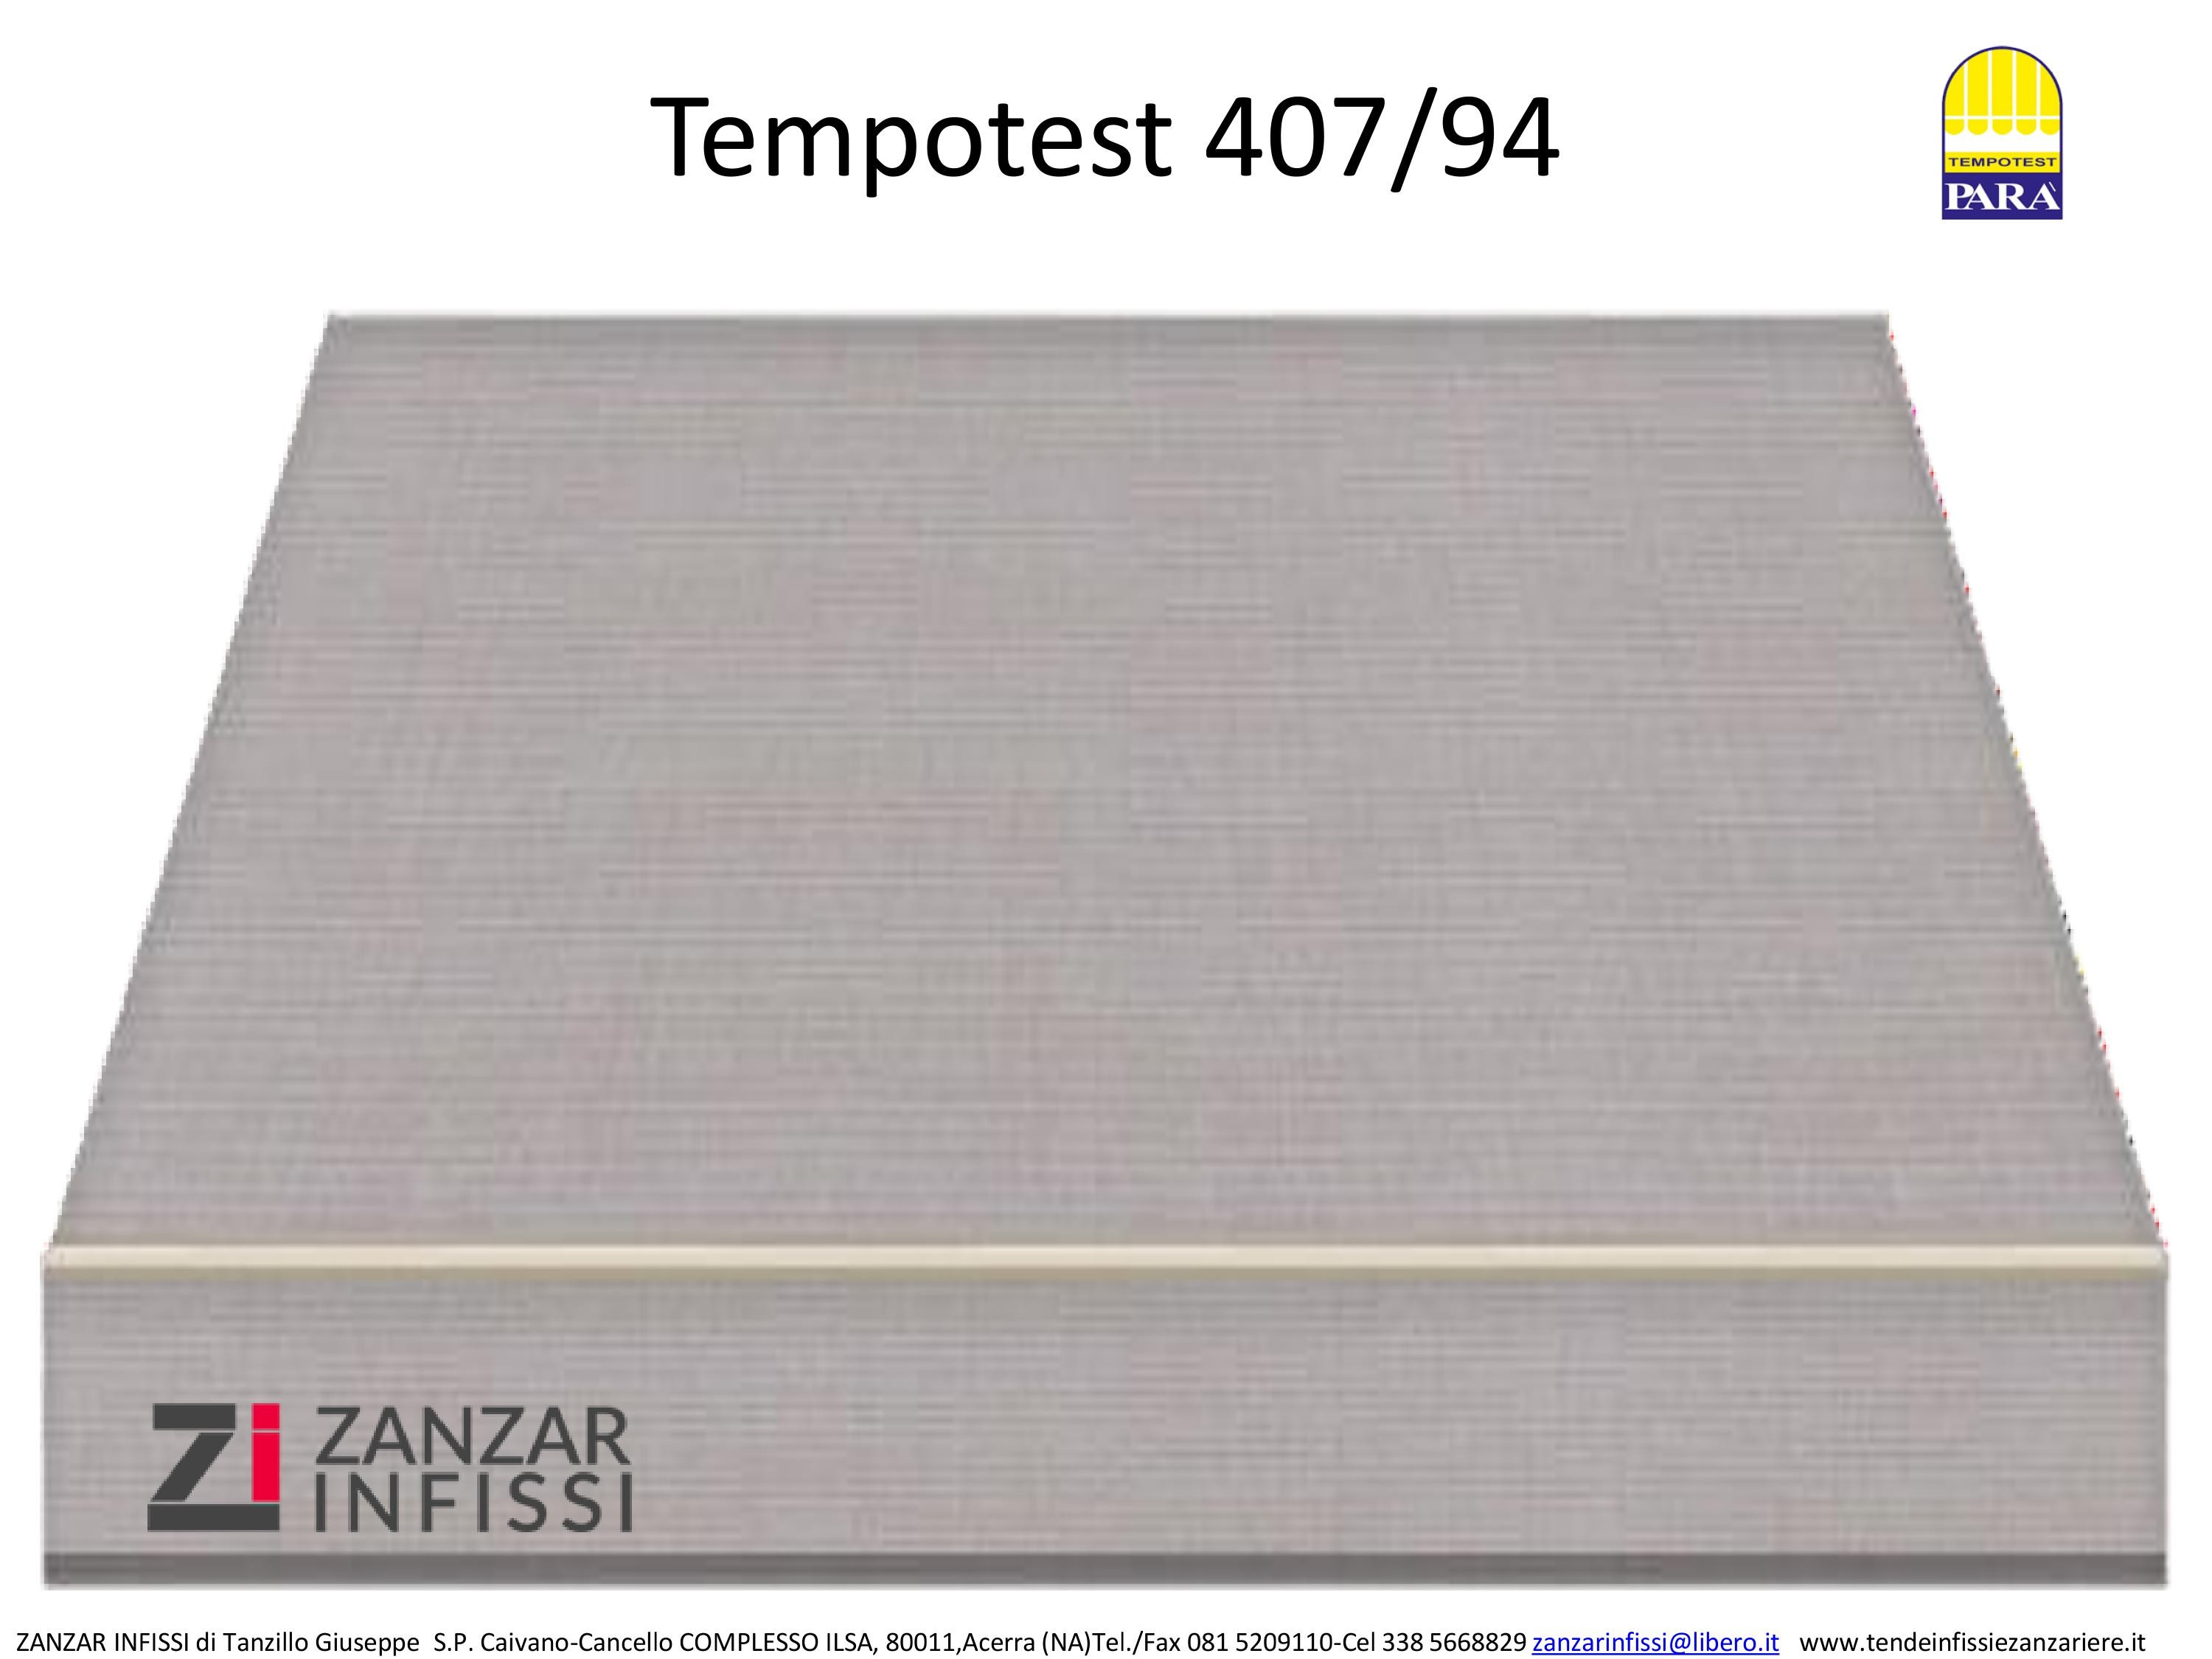 Tempotest 407/94